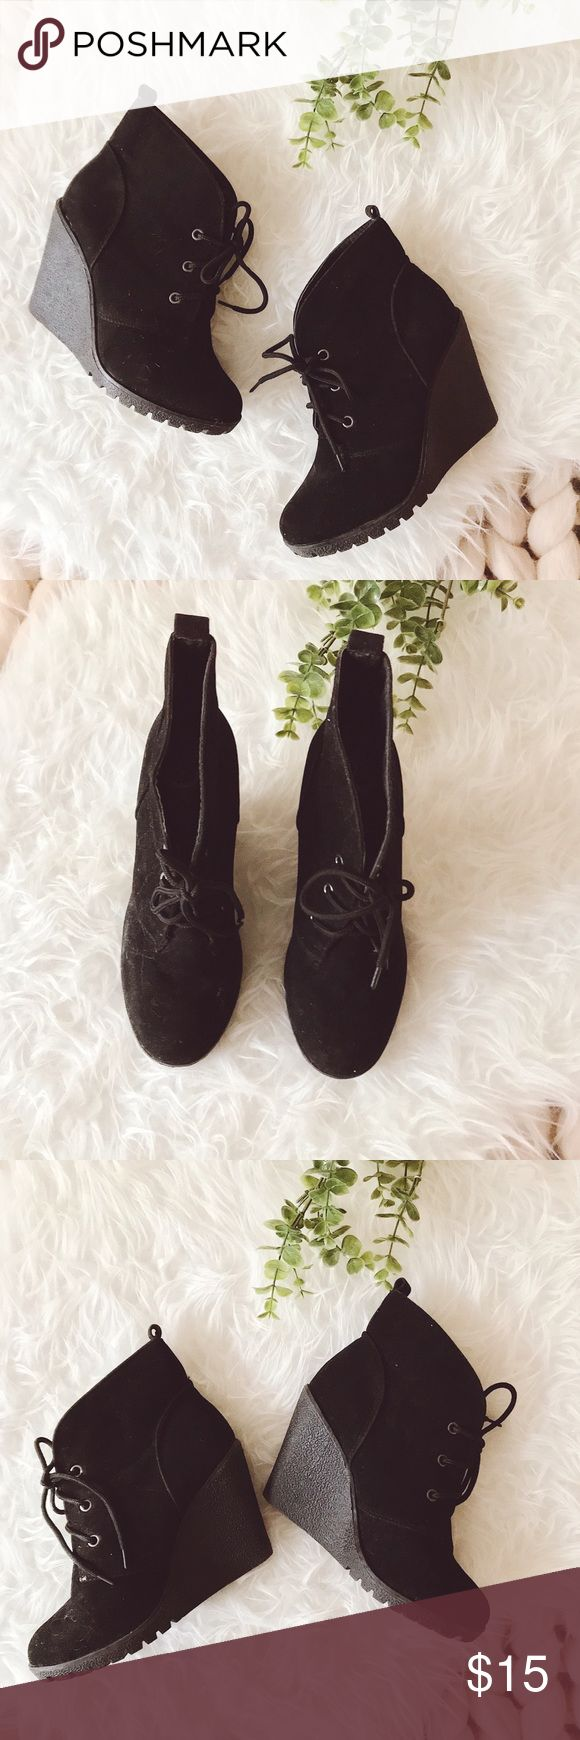 """ᴄʜᴀʀʟᴇs ᴀʟʙᴇʀᴛ ʙʟᴀᴄᴋ ᴡᴇᴅɢᴇs Good used condition black wedges. They lace in the front. Great for a versatile look. Some signs of wear and due to the material, they do get linty. A quick roll with a lint roller with """"freshen"""" them up quickly!  ‣ᴡᴇᴅɢᴇ ʜᴇᴇʟ 3.5"""" ‣ᴜᴘᴘᴇʀ sᴏʟᴇ: ᴄᴏᴡ sᴜᴇᴅᴇ  ✨Pet friendly home ✨Please ask questions before purchase ✨Reasonable offers welcomed ✨Bundle to save more Charles Albert Shoes Wedges"""